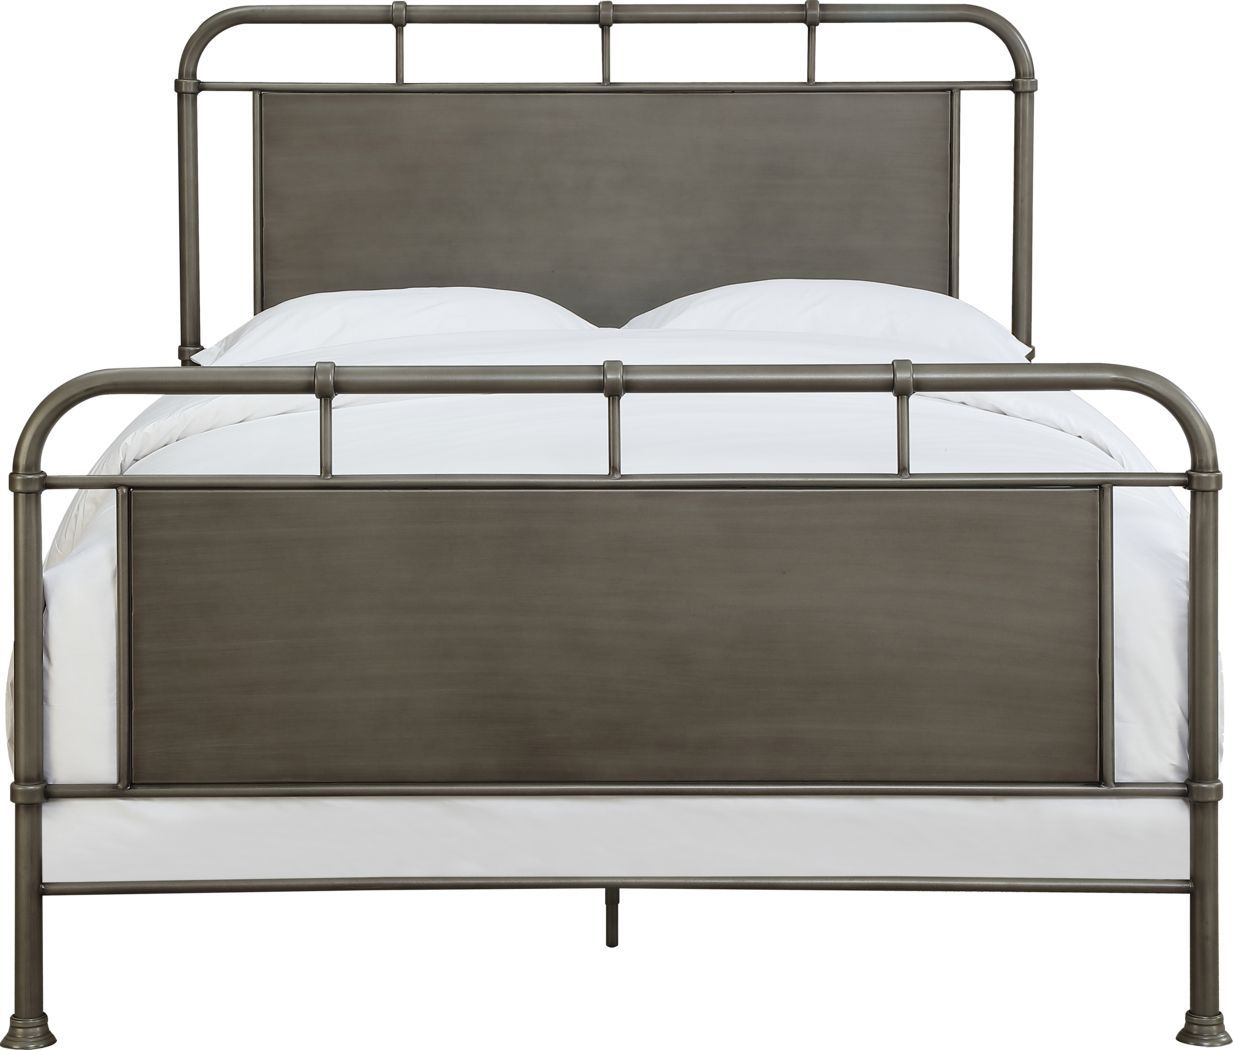 Sana Smoke Queen Panel Bed With Images Queen Panel Beds Panel